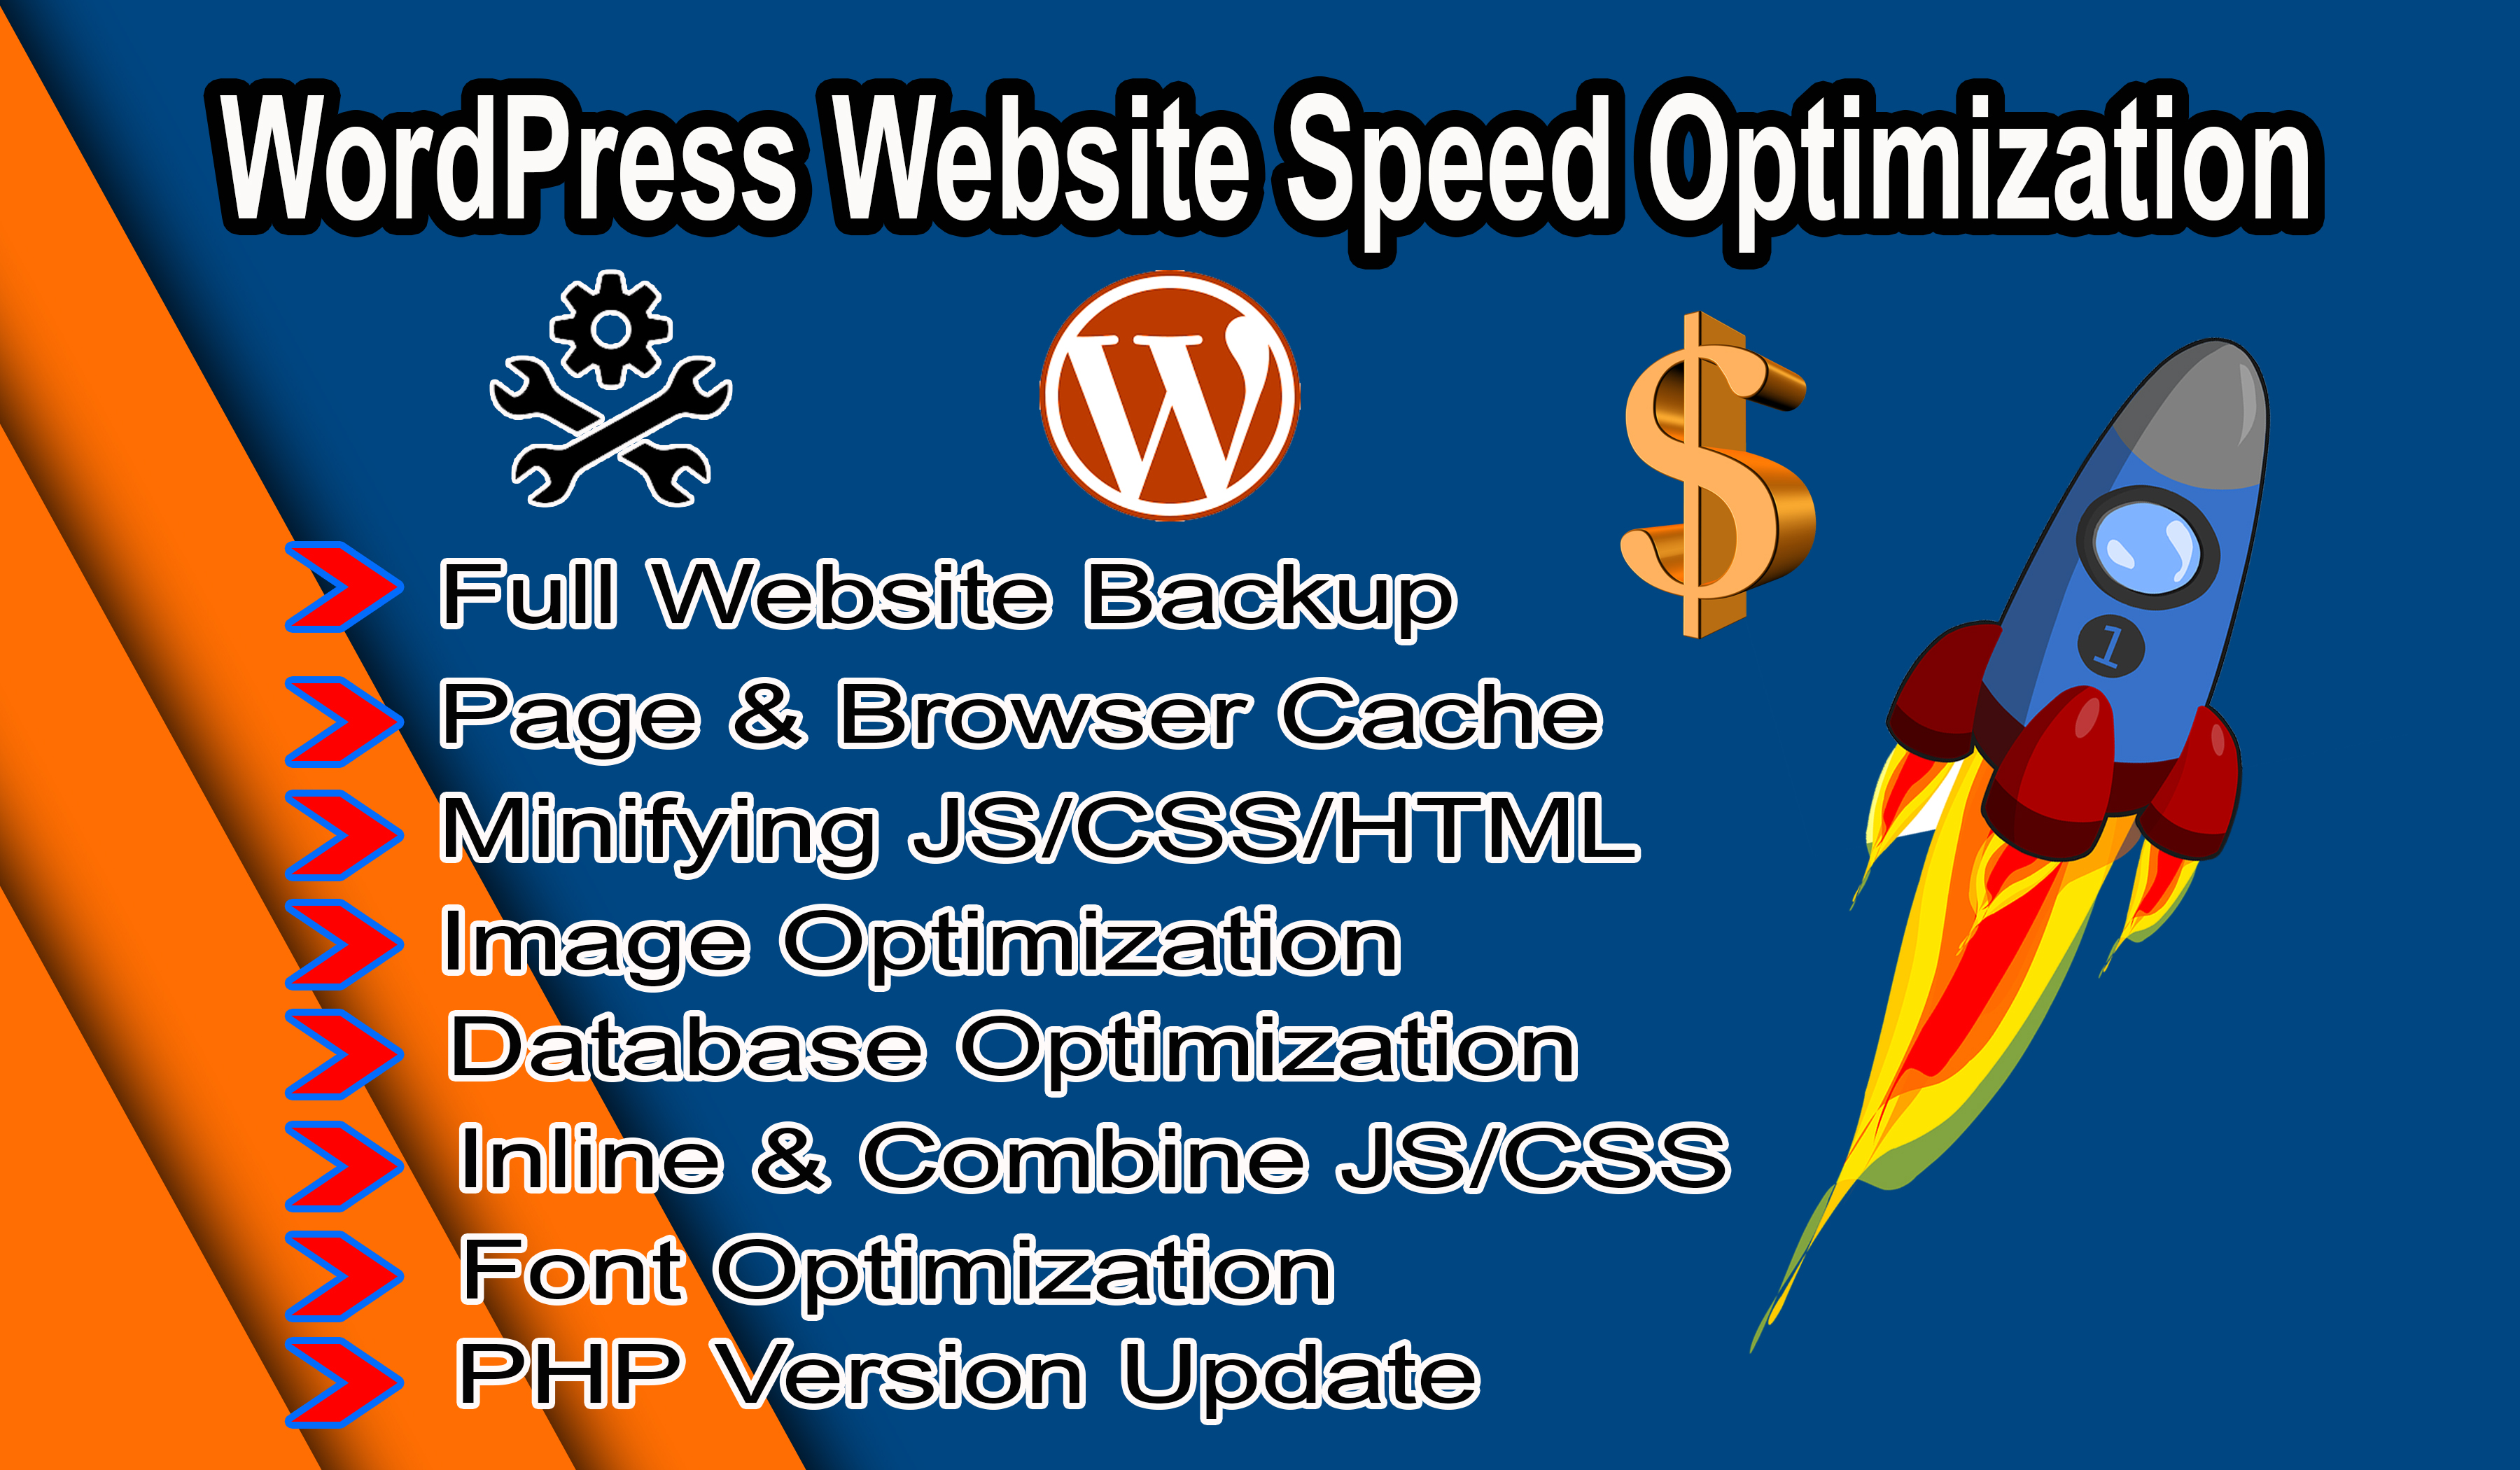 I Will Do WordPress Website Speed Optimization within 24 hours